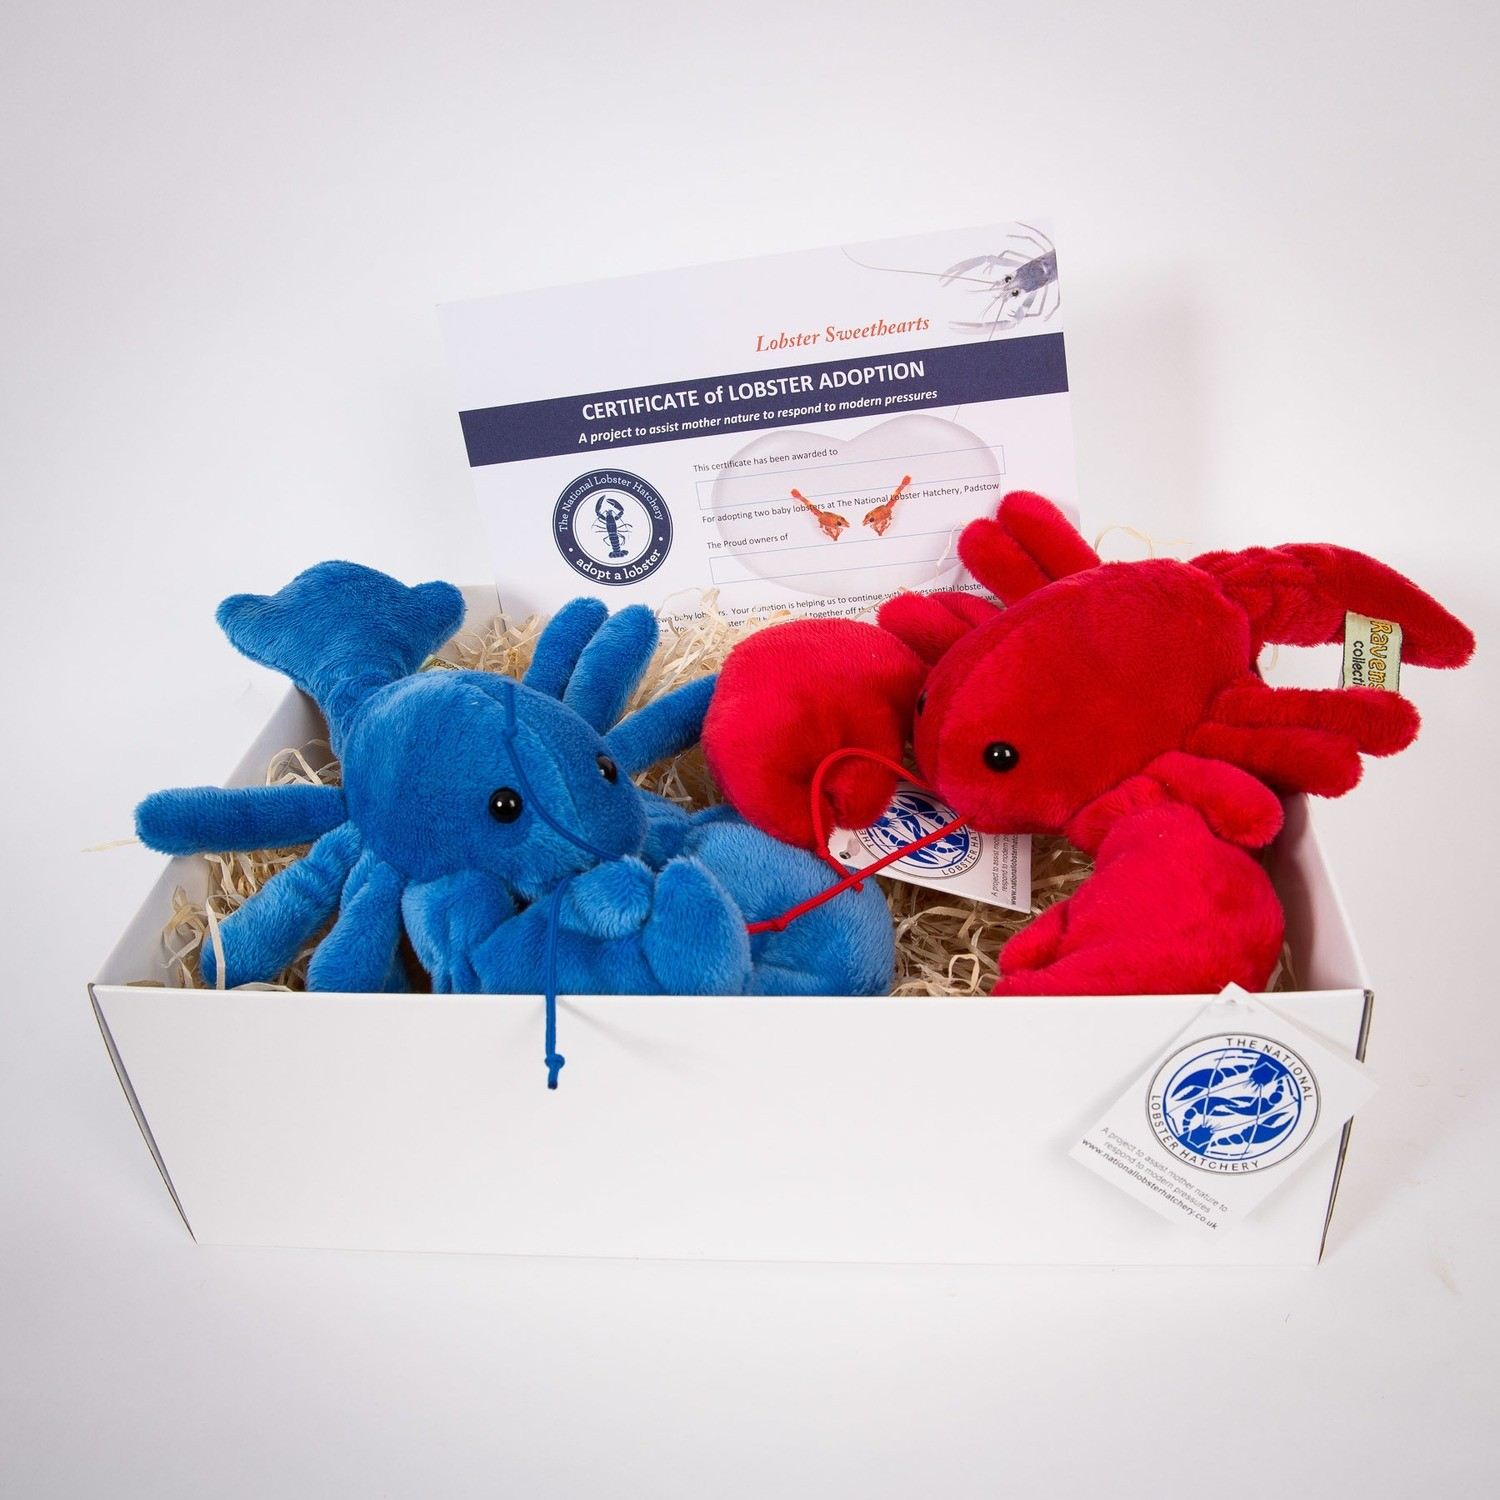 Adopt a Lobster Sweethearts Gift Pack with Red & Blue fluffy lobsters